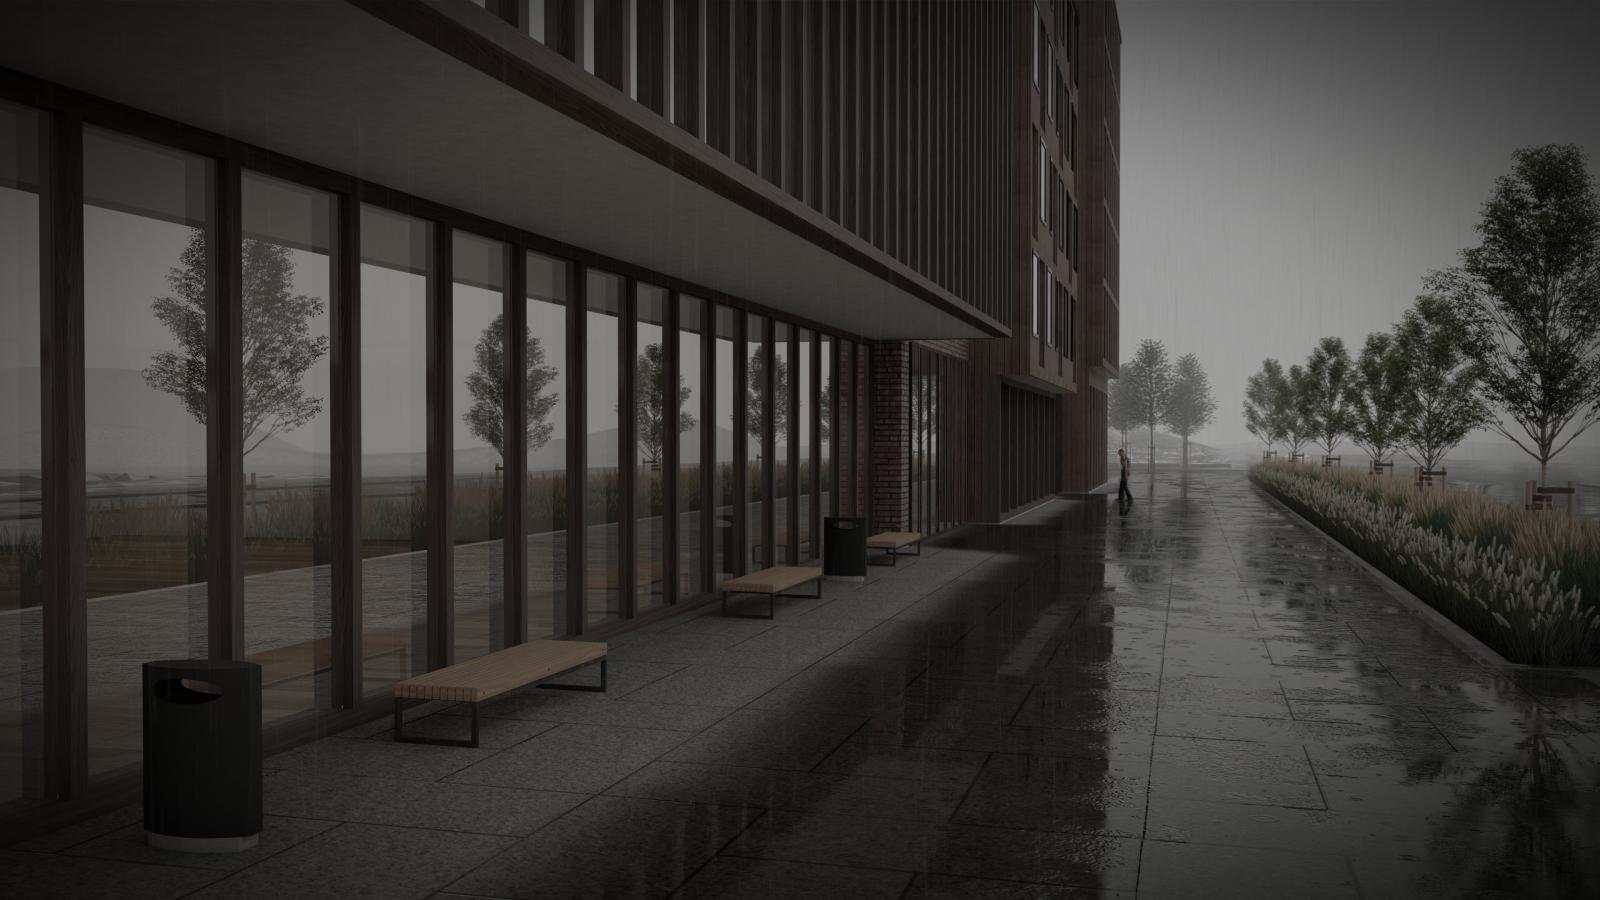 Example of a Sketchup model rendered in Lumion. Project collaboration between Rambøll landscape and DRMA architects.